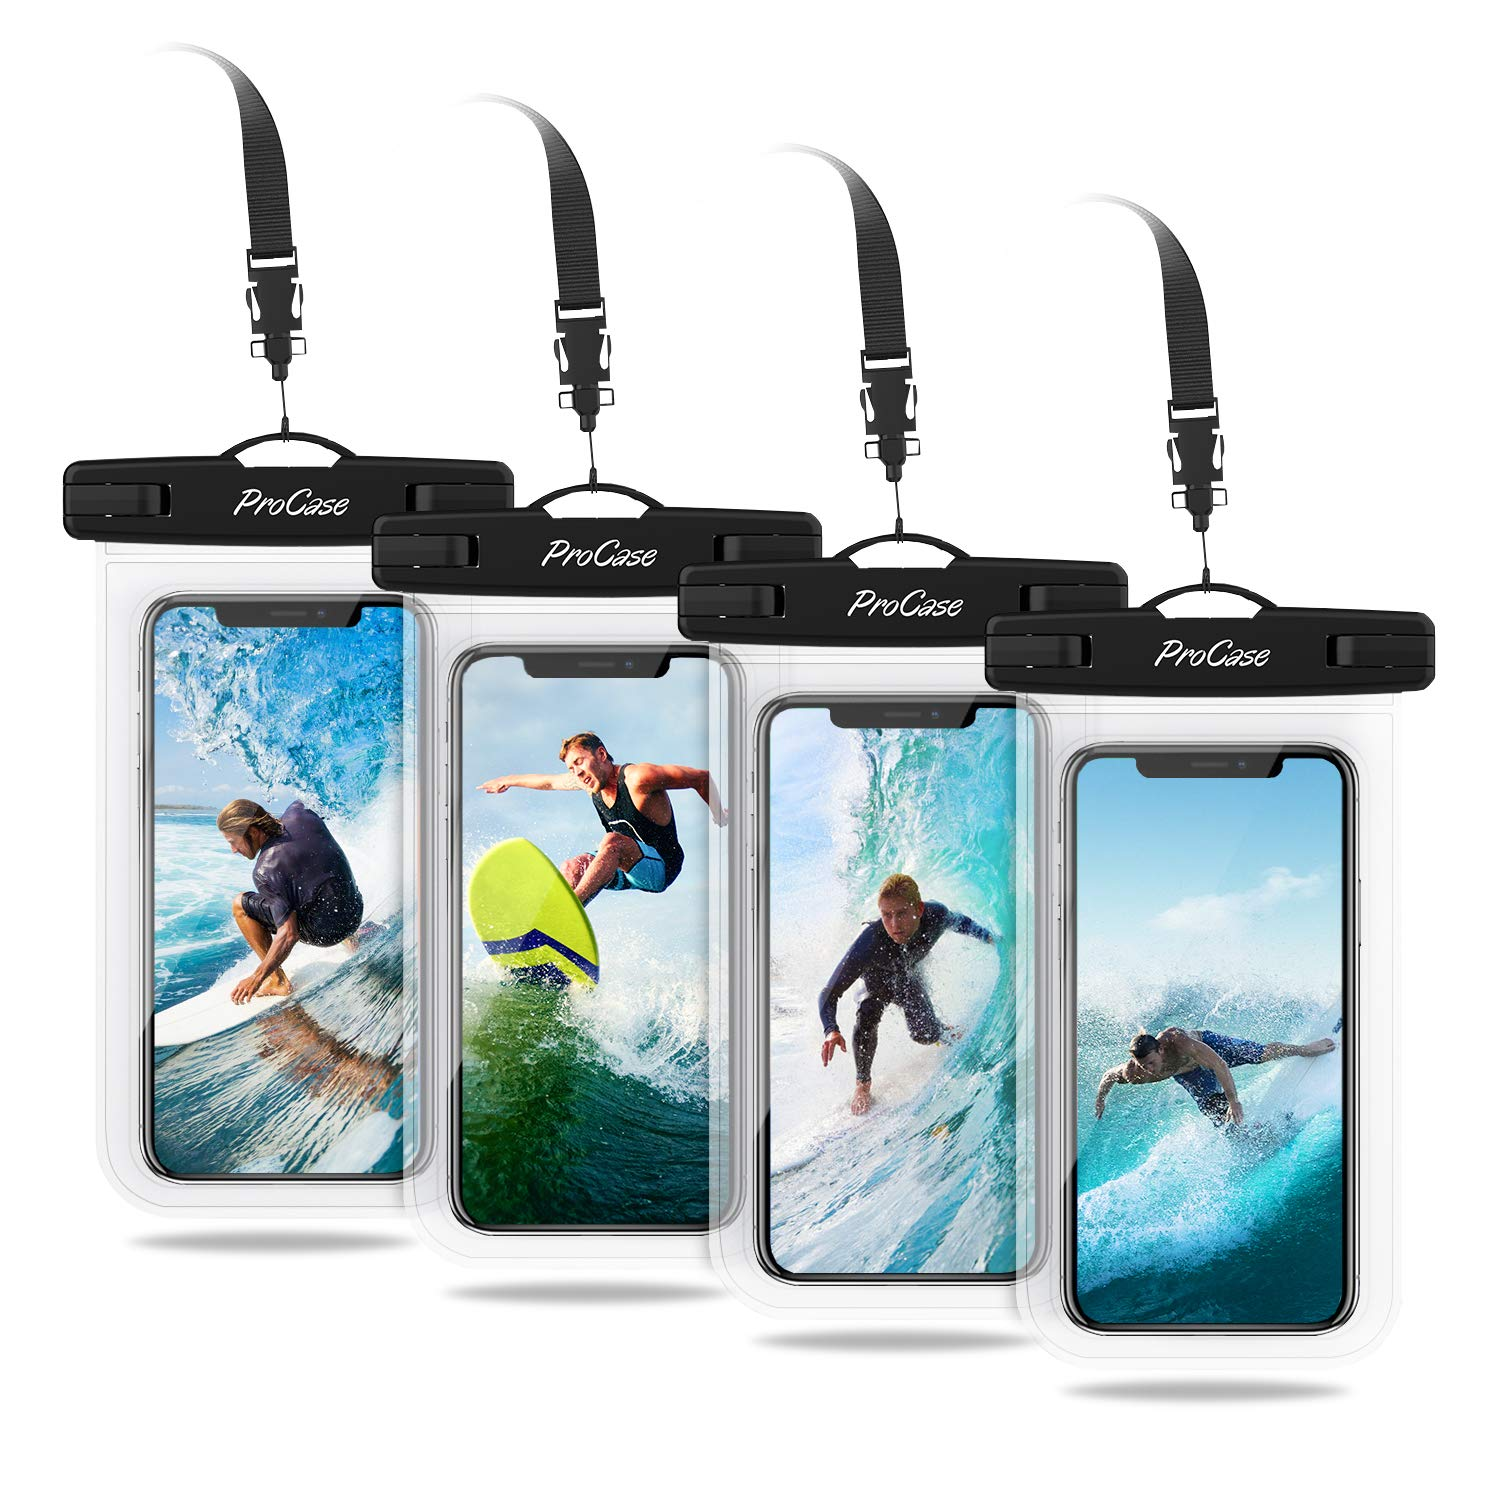 """ProCase Universal Cellphone Waterproof Pouch Dry Bag Underwater Case for iPhone 11 Pro Max Xs Max XR X 8 7Plus, Galaxy S10+ S9 S8+/ Note 10+ 9 8, Pixel 4XL up to 6.8"""" - 4 Pack, Clear"""